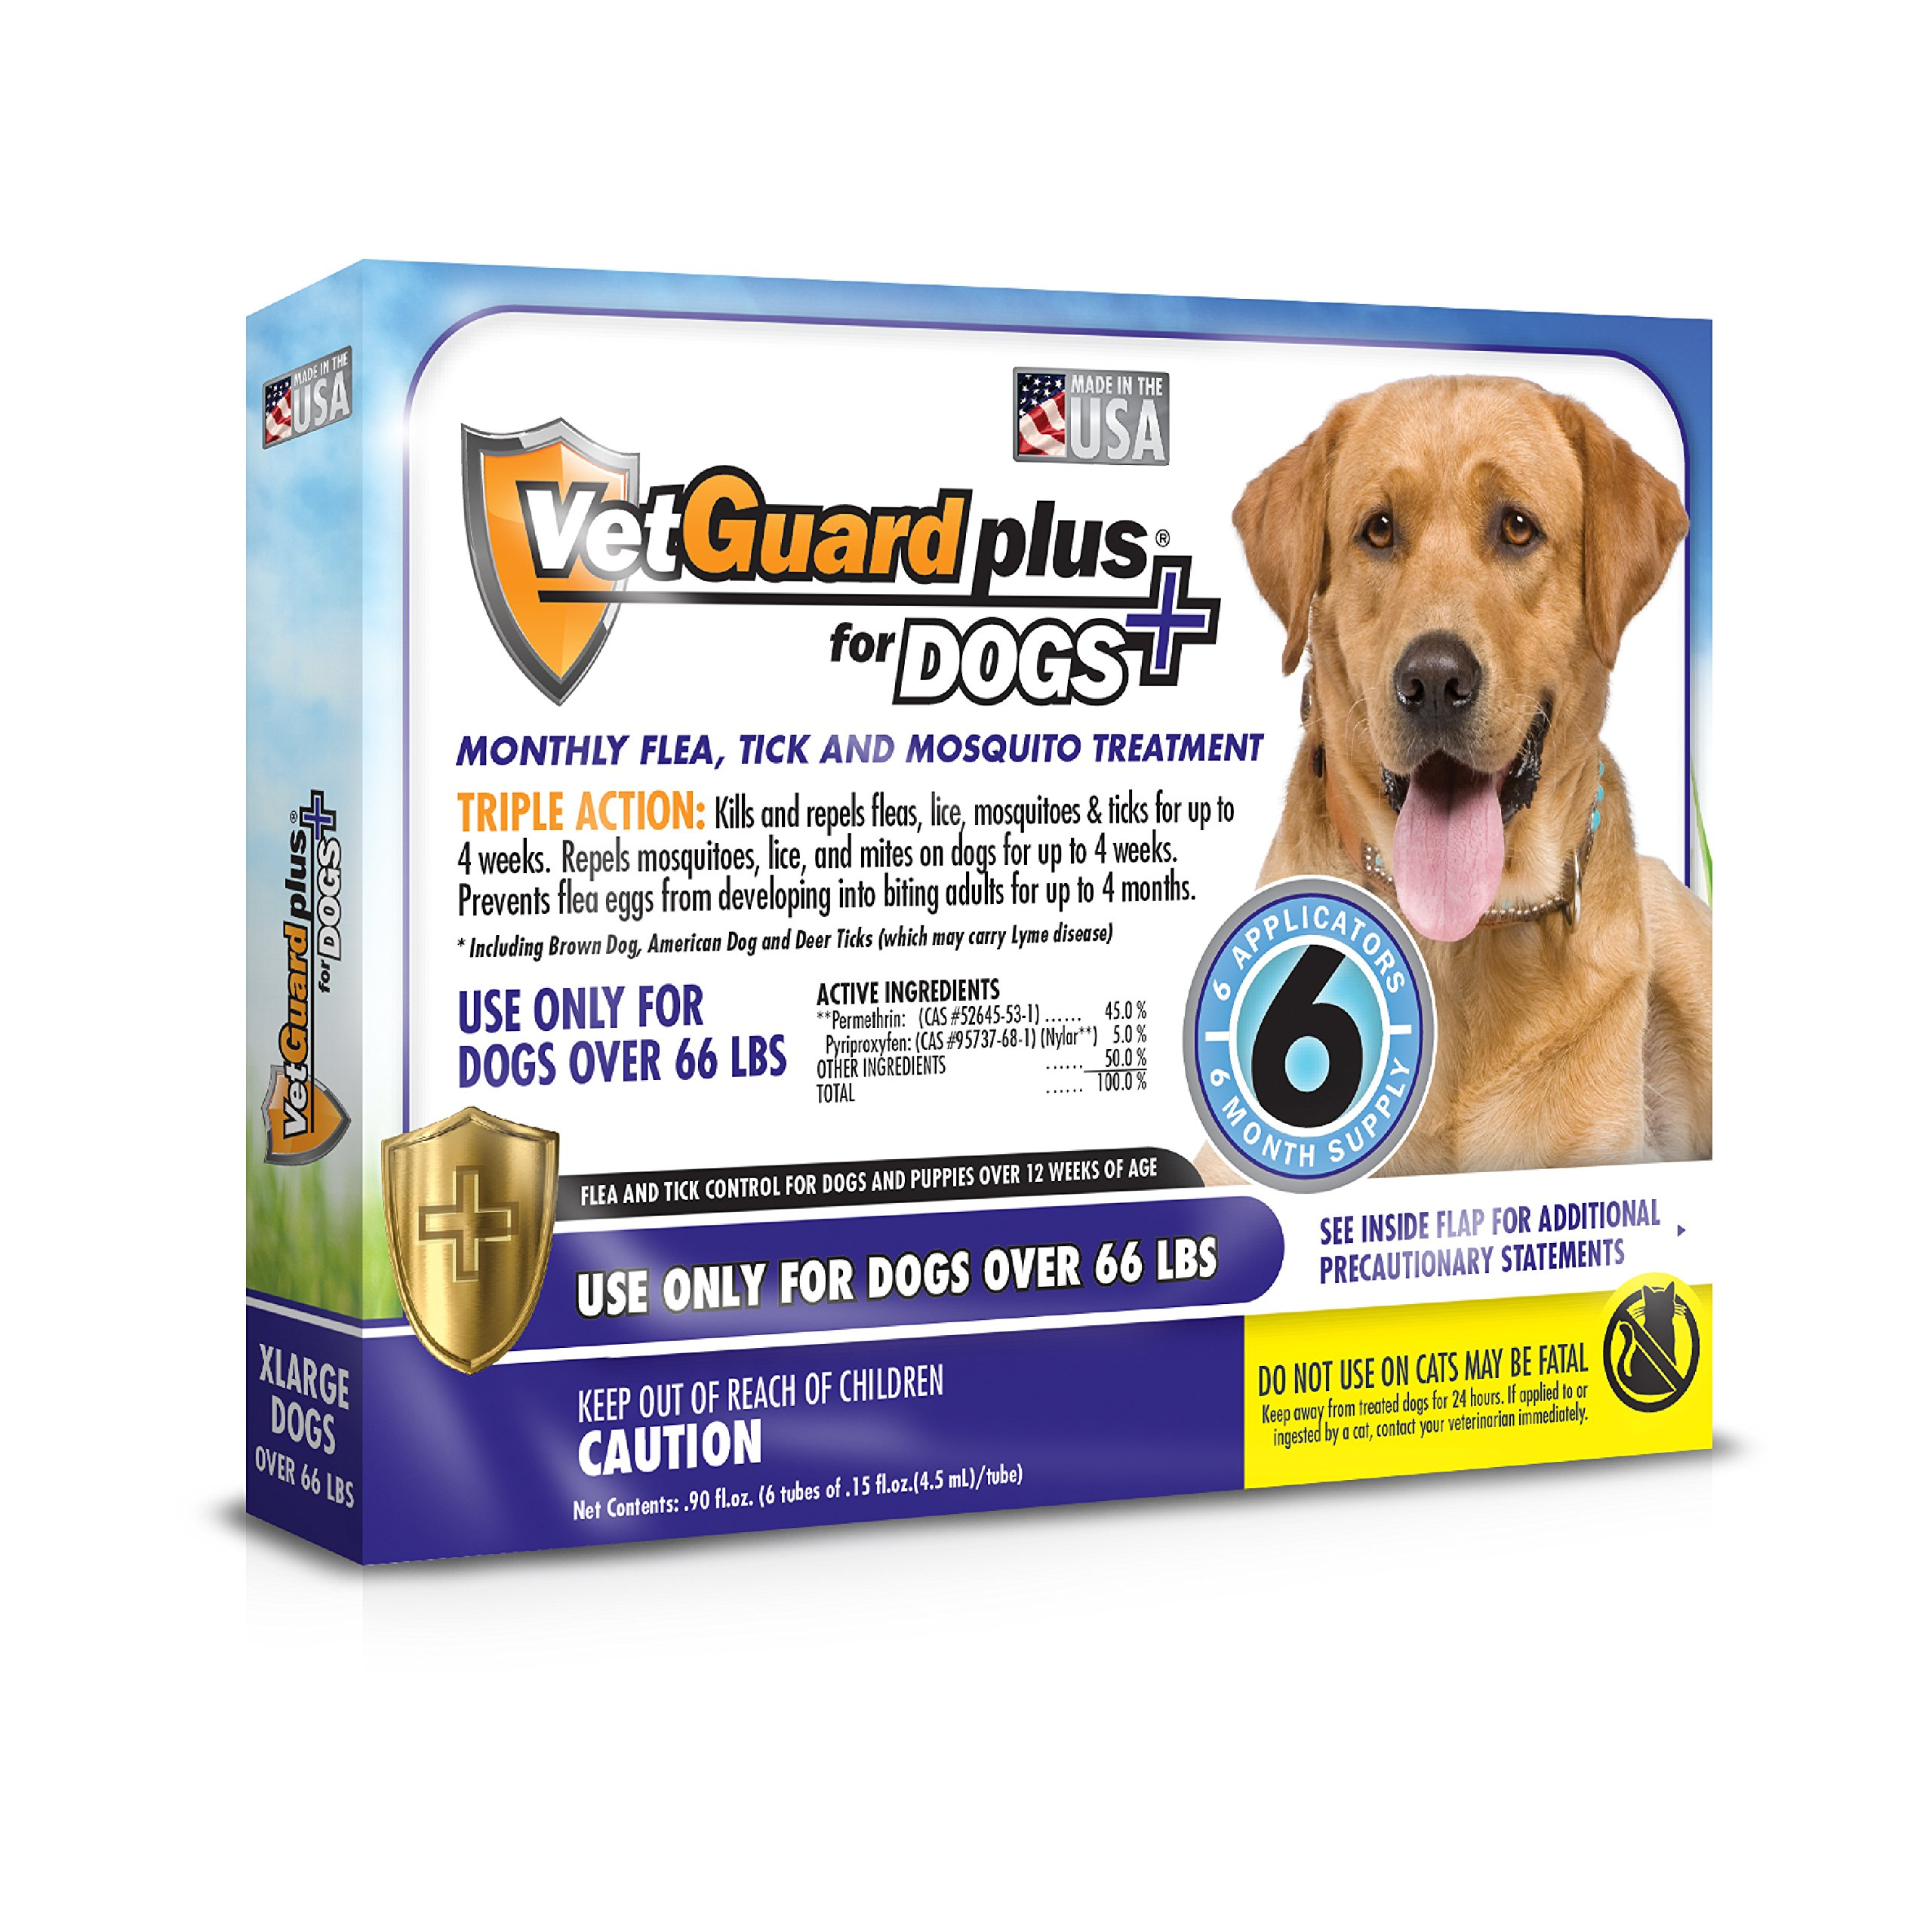 The Best Flea And Tick Medicine For Dogs